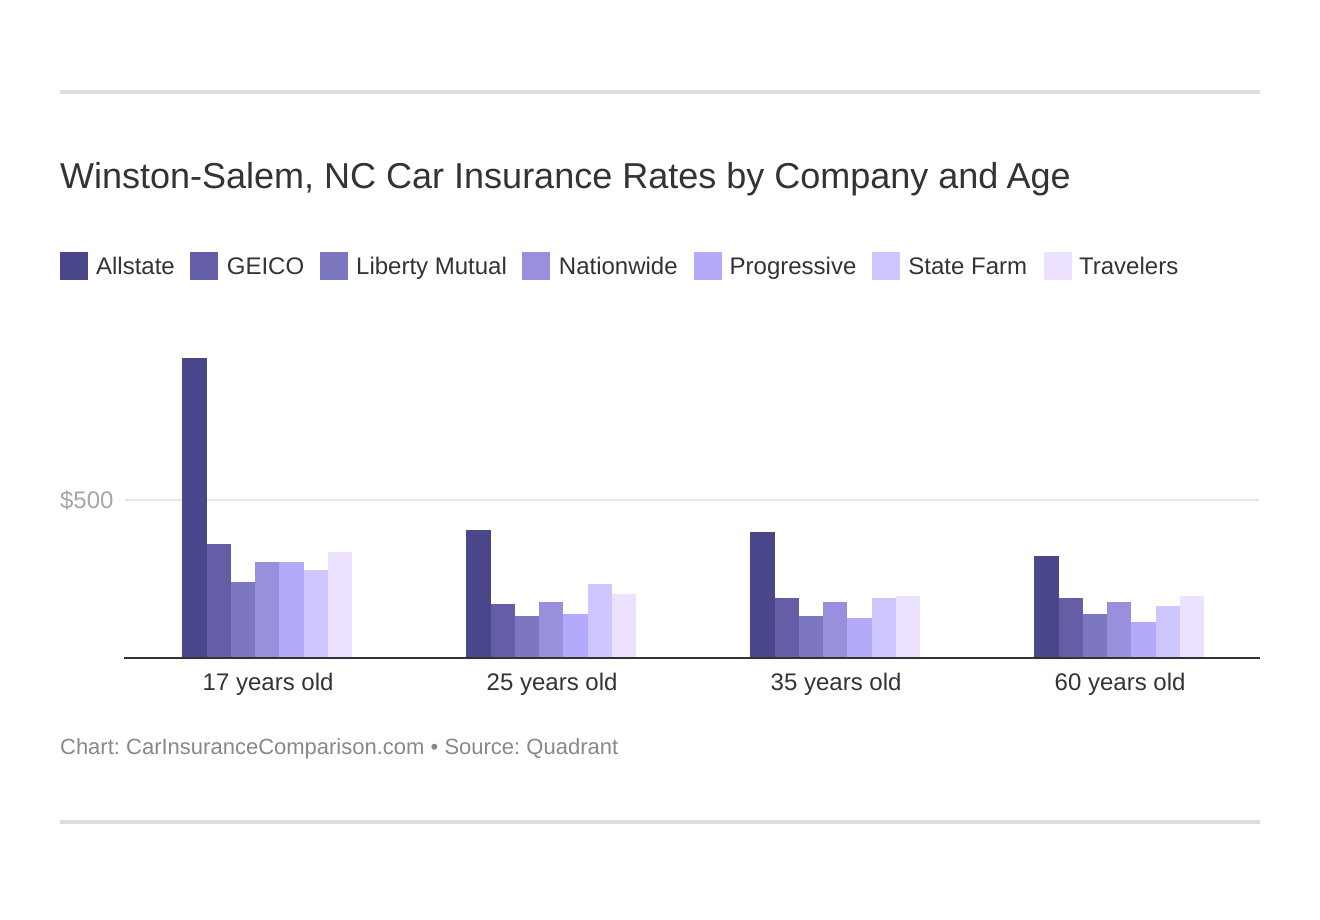 Winston-Salem, NC Car Insurance Rates by Company and Age